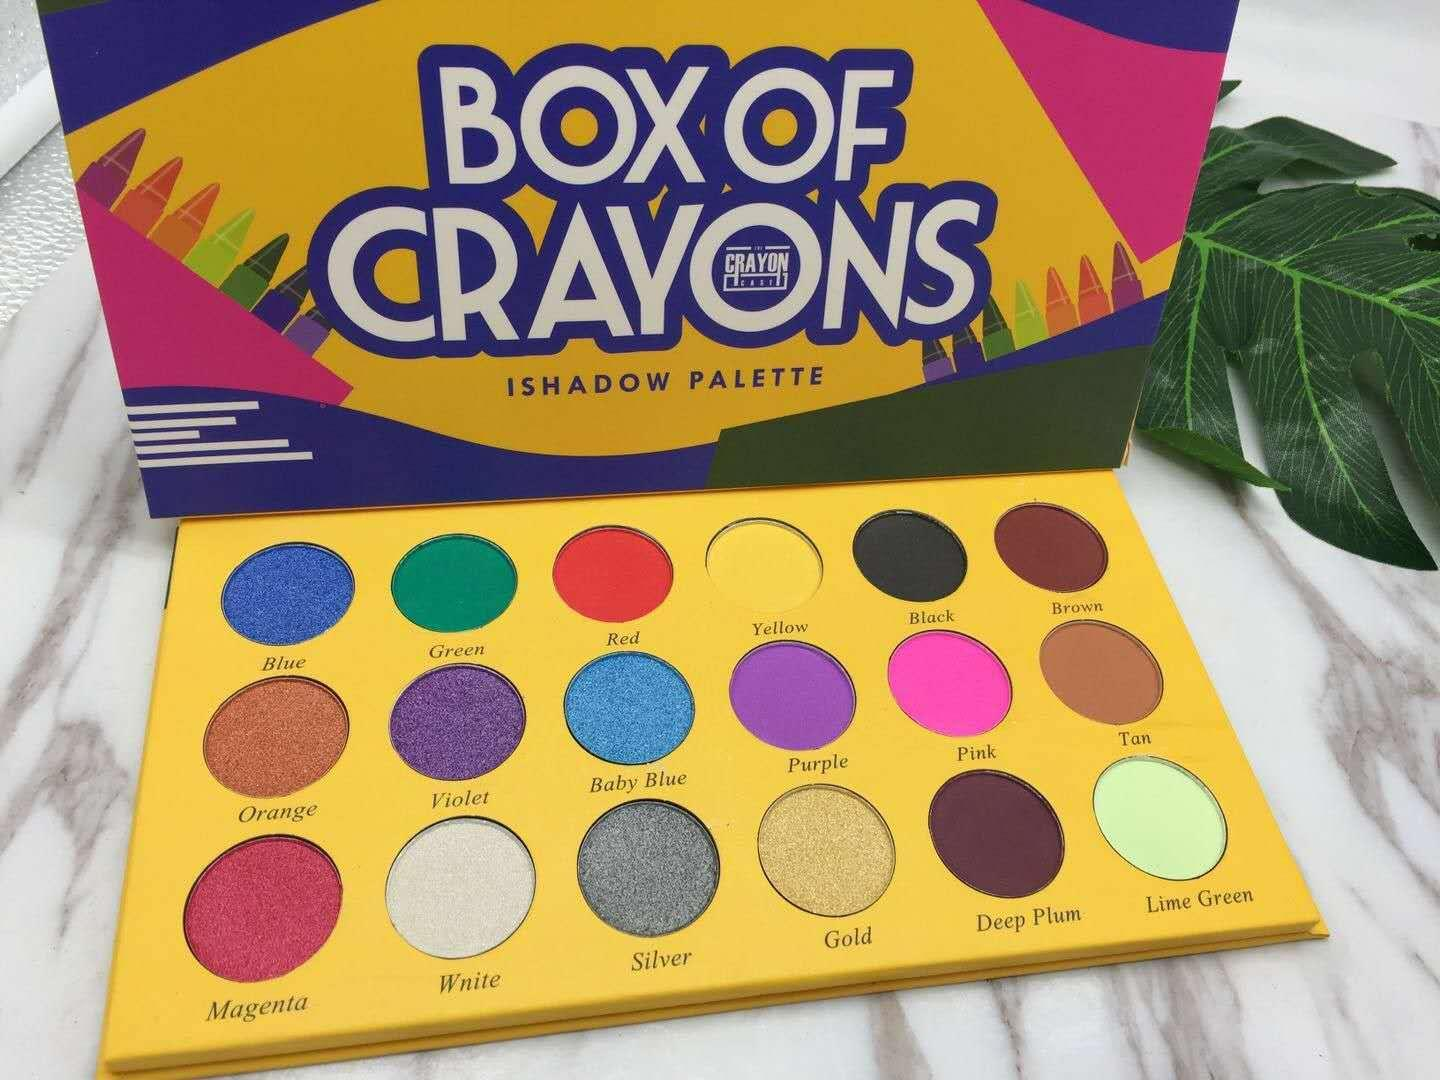 BOX OF CRAYONS Eyeshadow Palette 18 Color Shimmer Matte Eyeshadow Palette Makeup Eye shadow free DHL